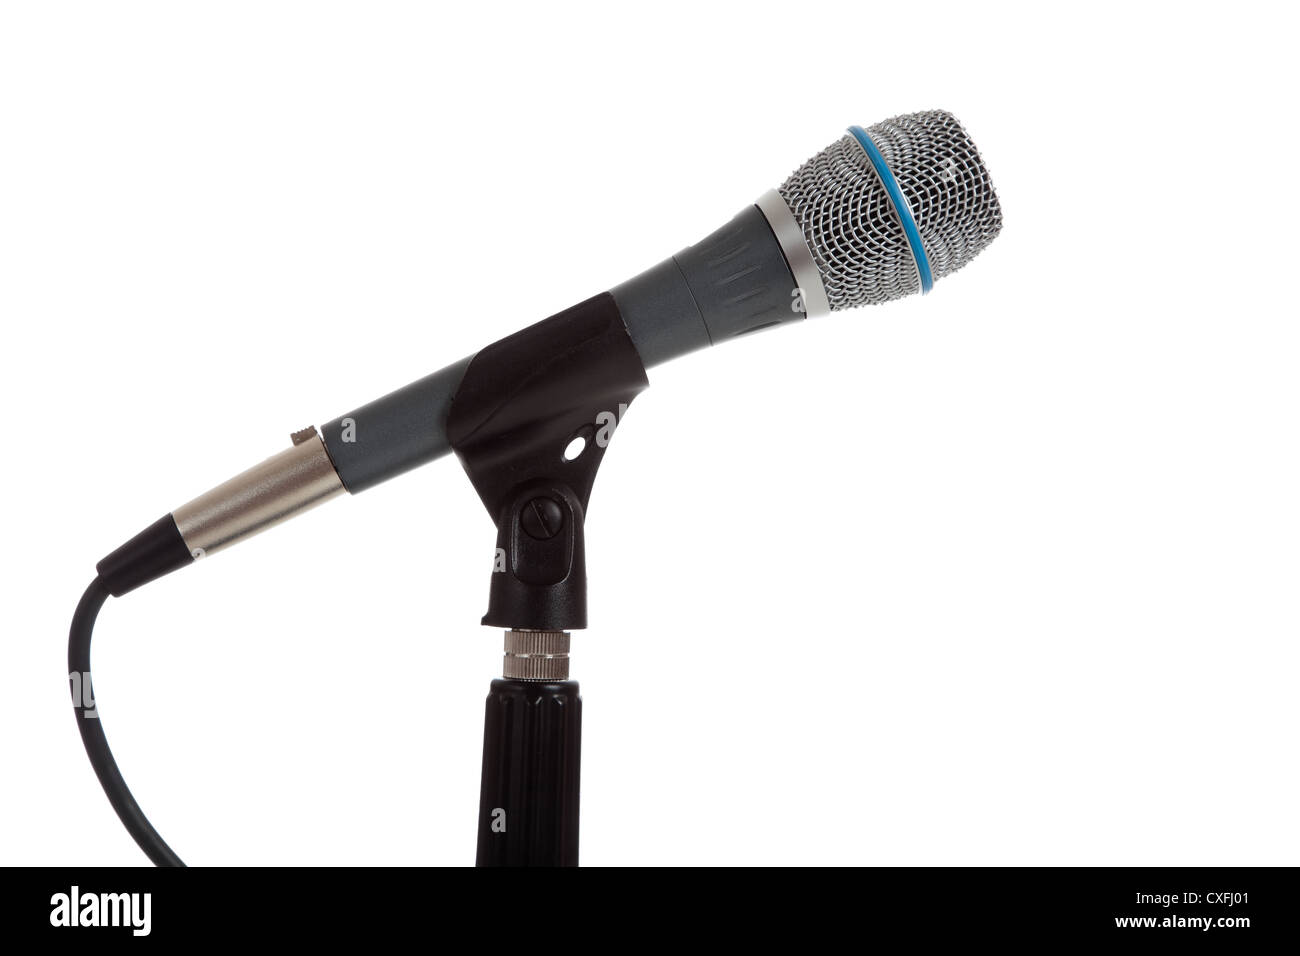 a silver mic on a stand on a white background - Stock Image